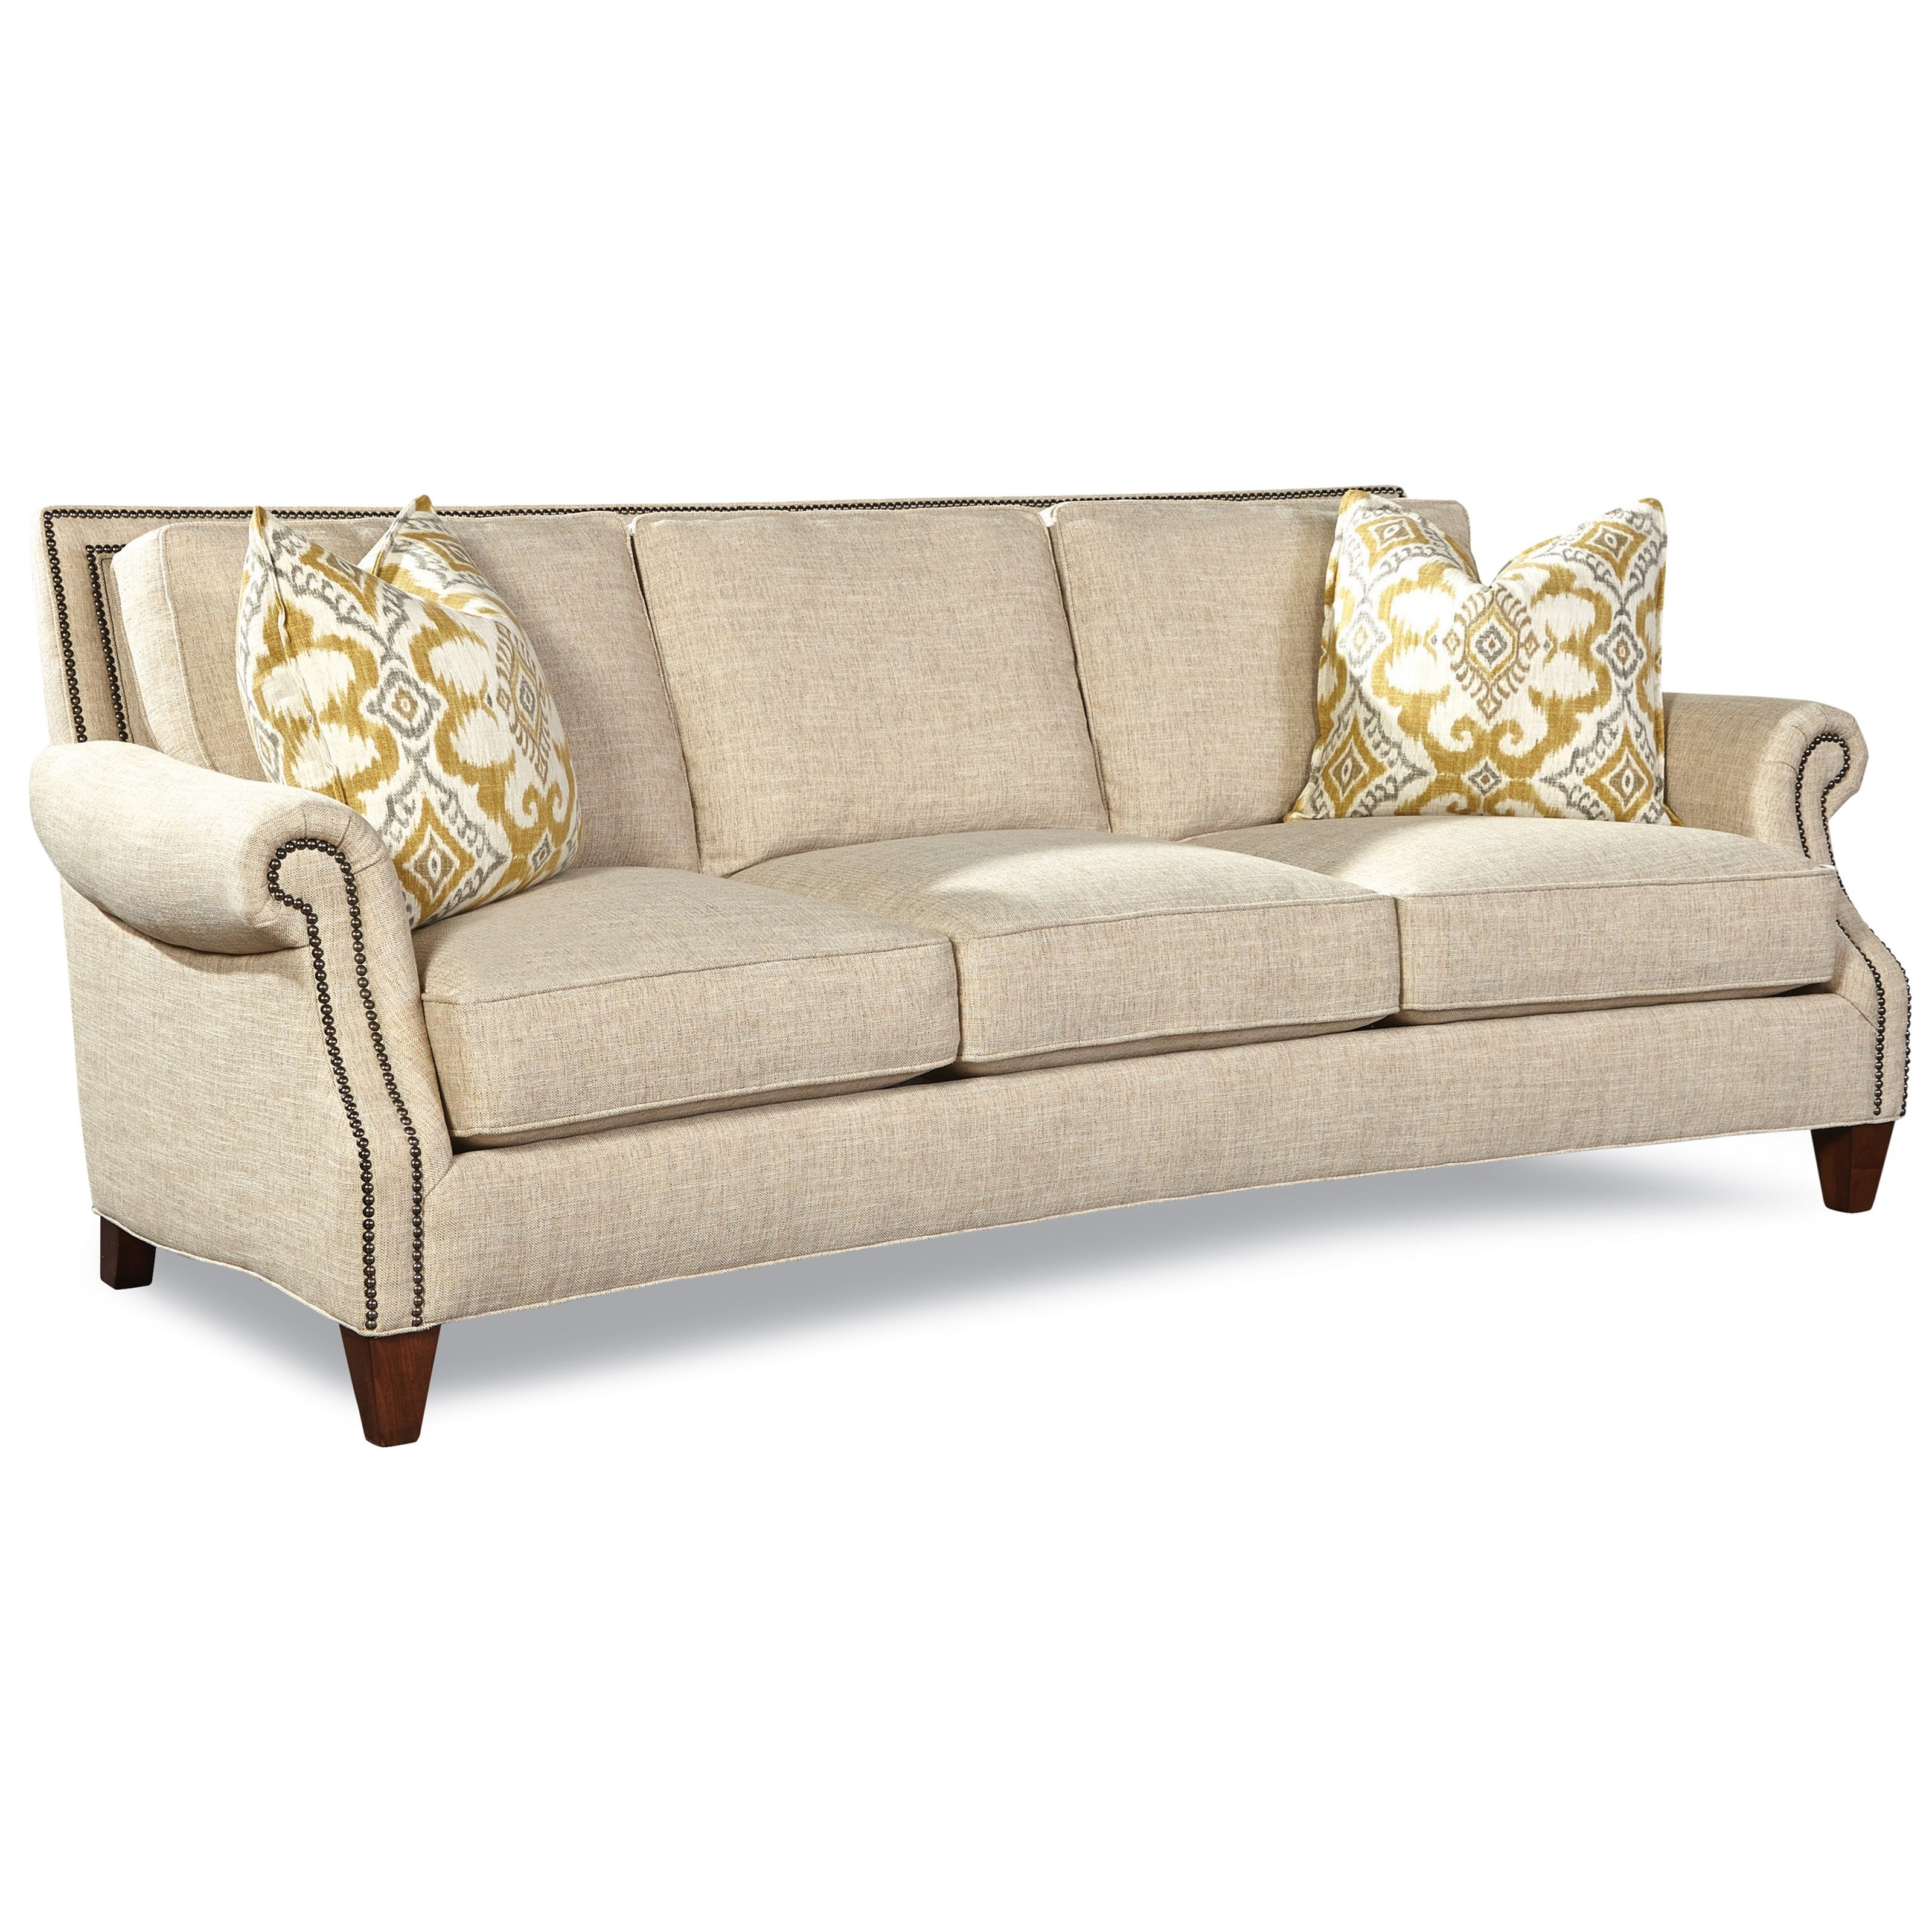 7249 Sofa by Geoffrey Alexander at Sprintz Furniture